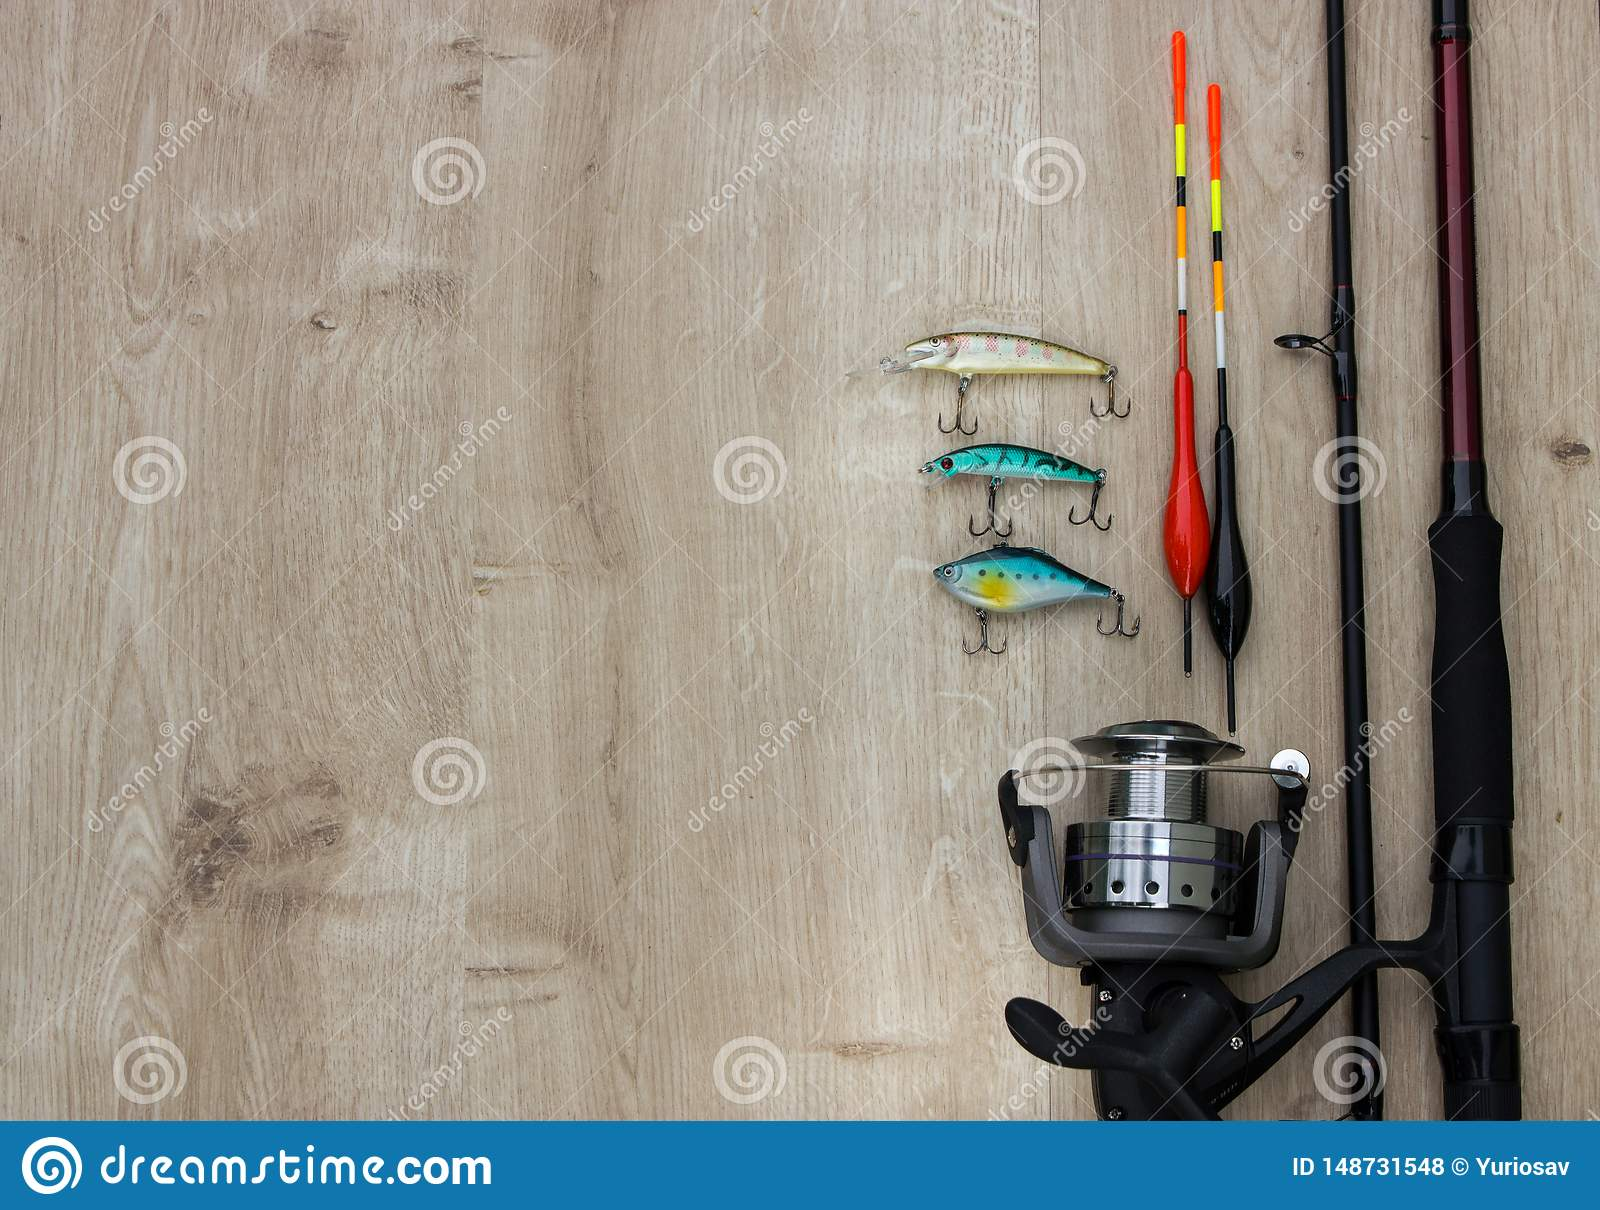 Wooden bridge with spinner lures and fishing bytes. Place empty can be used for text